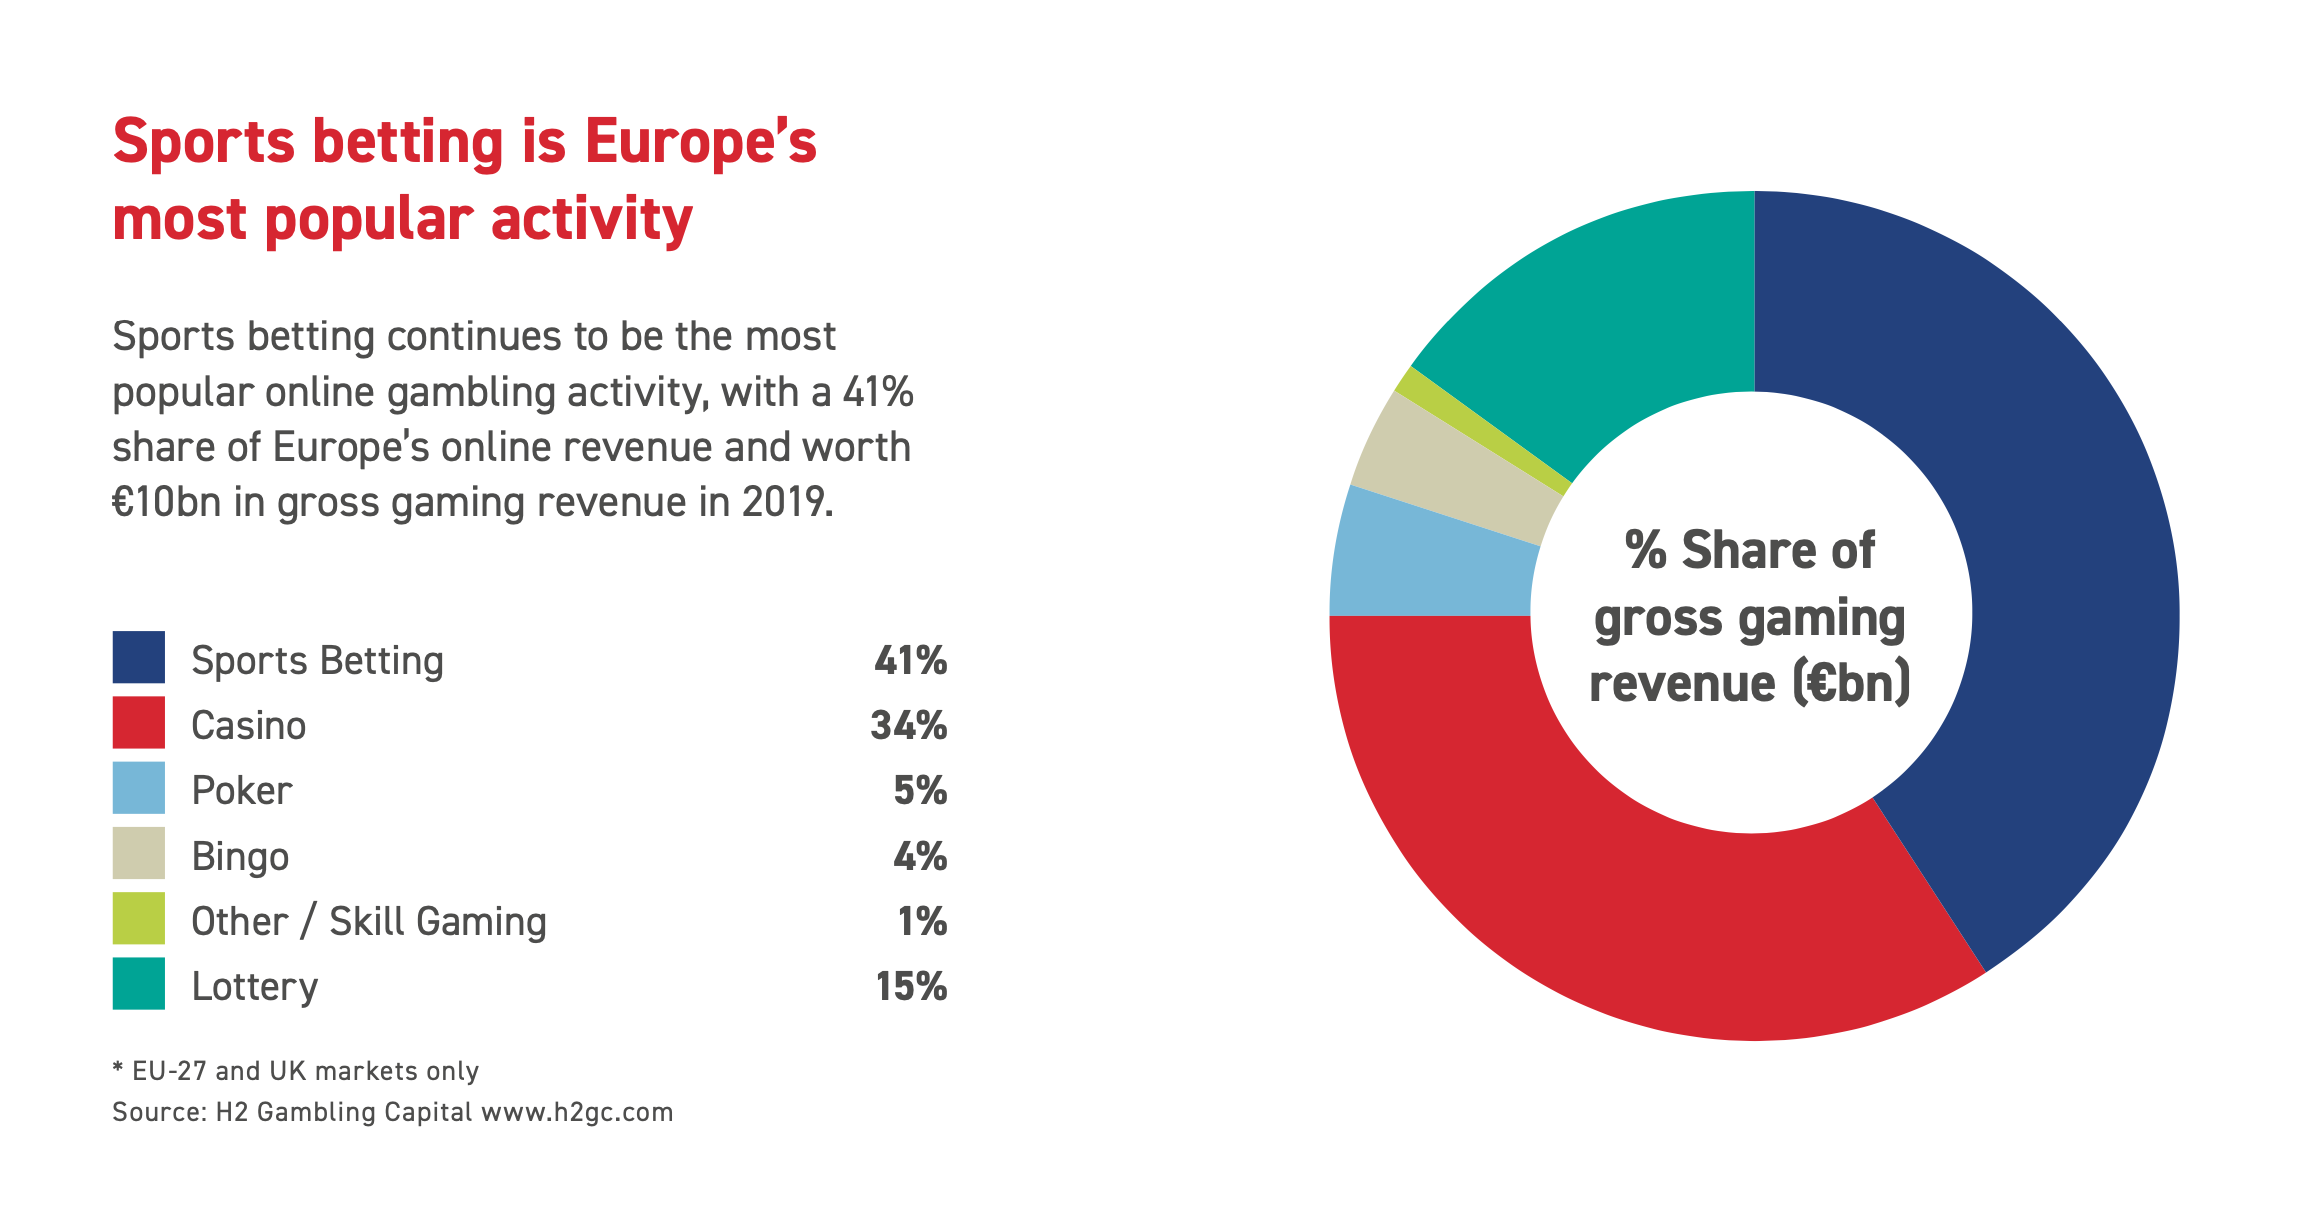 Product shares in the European online gambling market